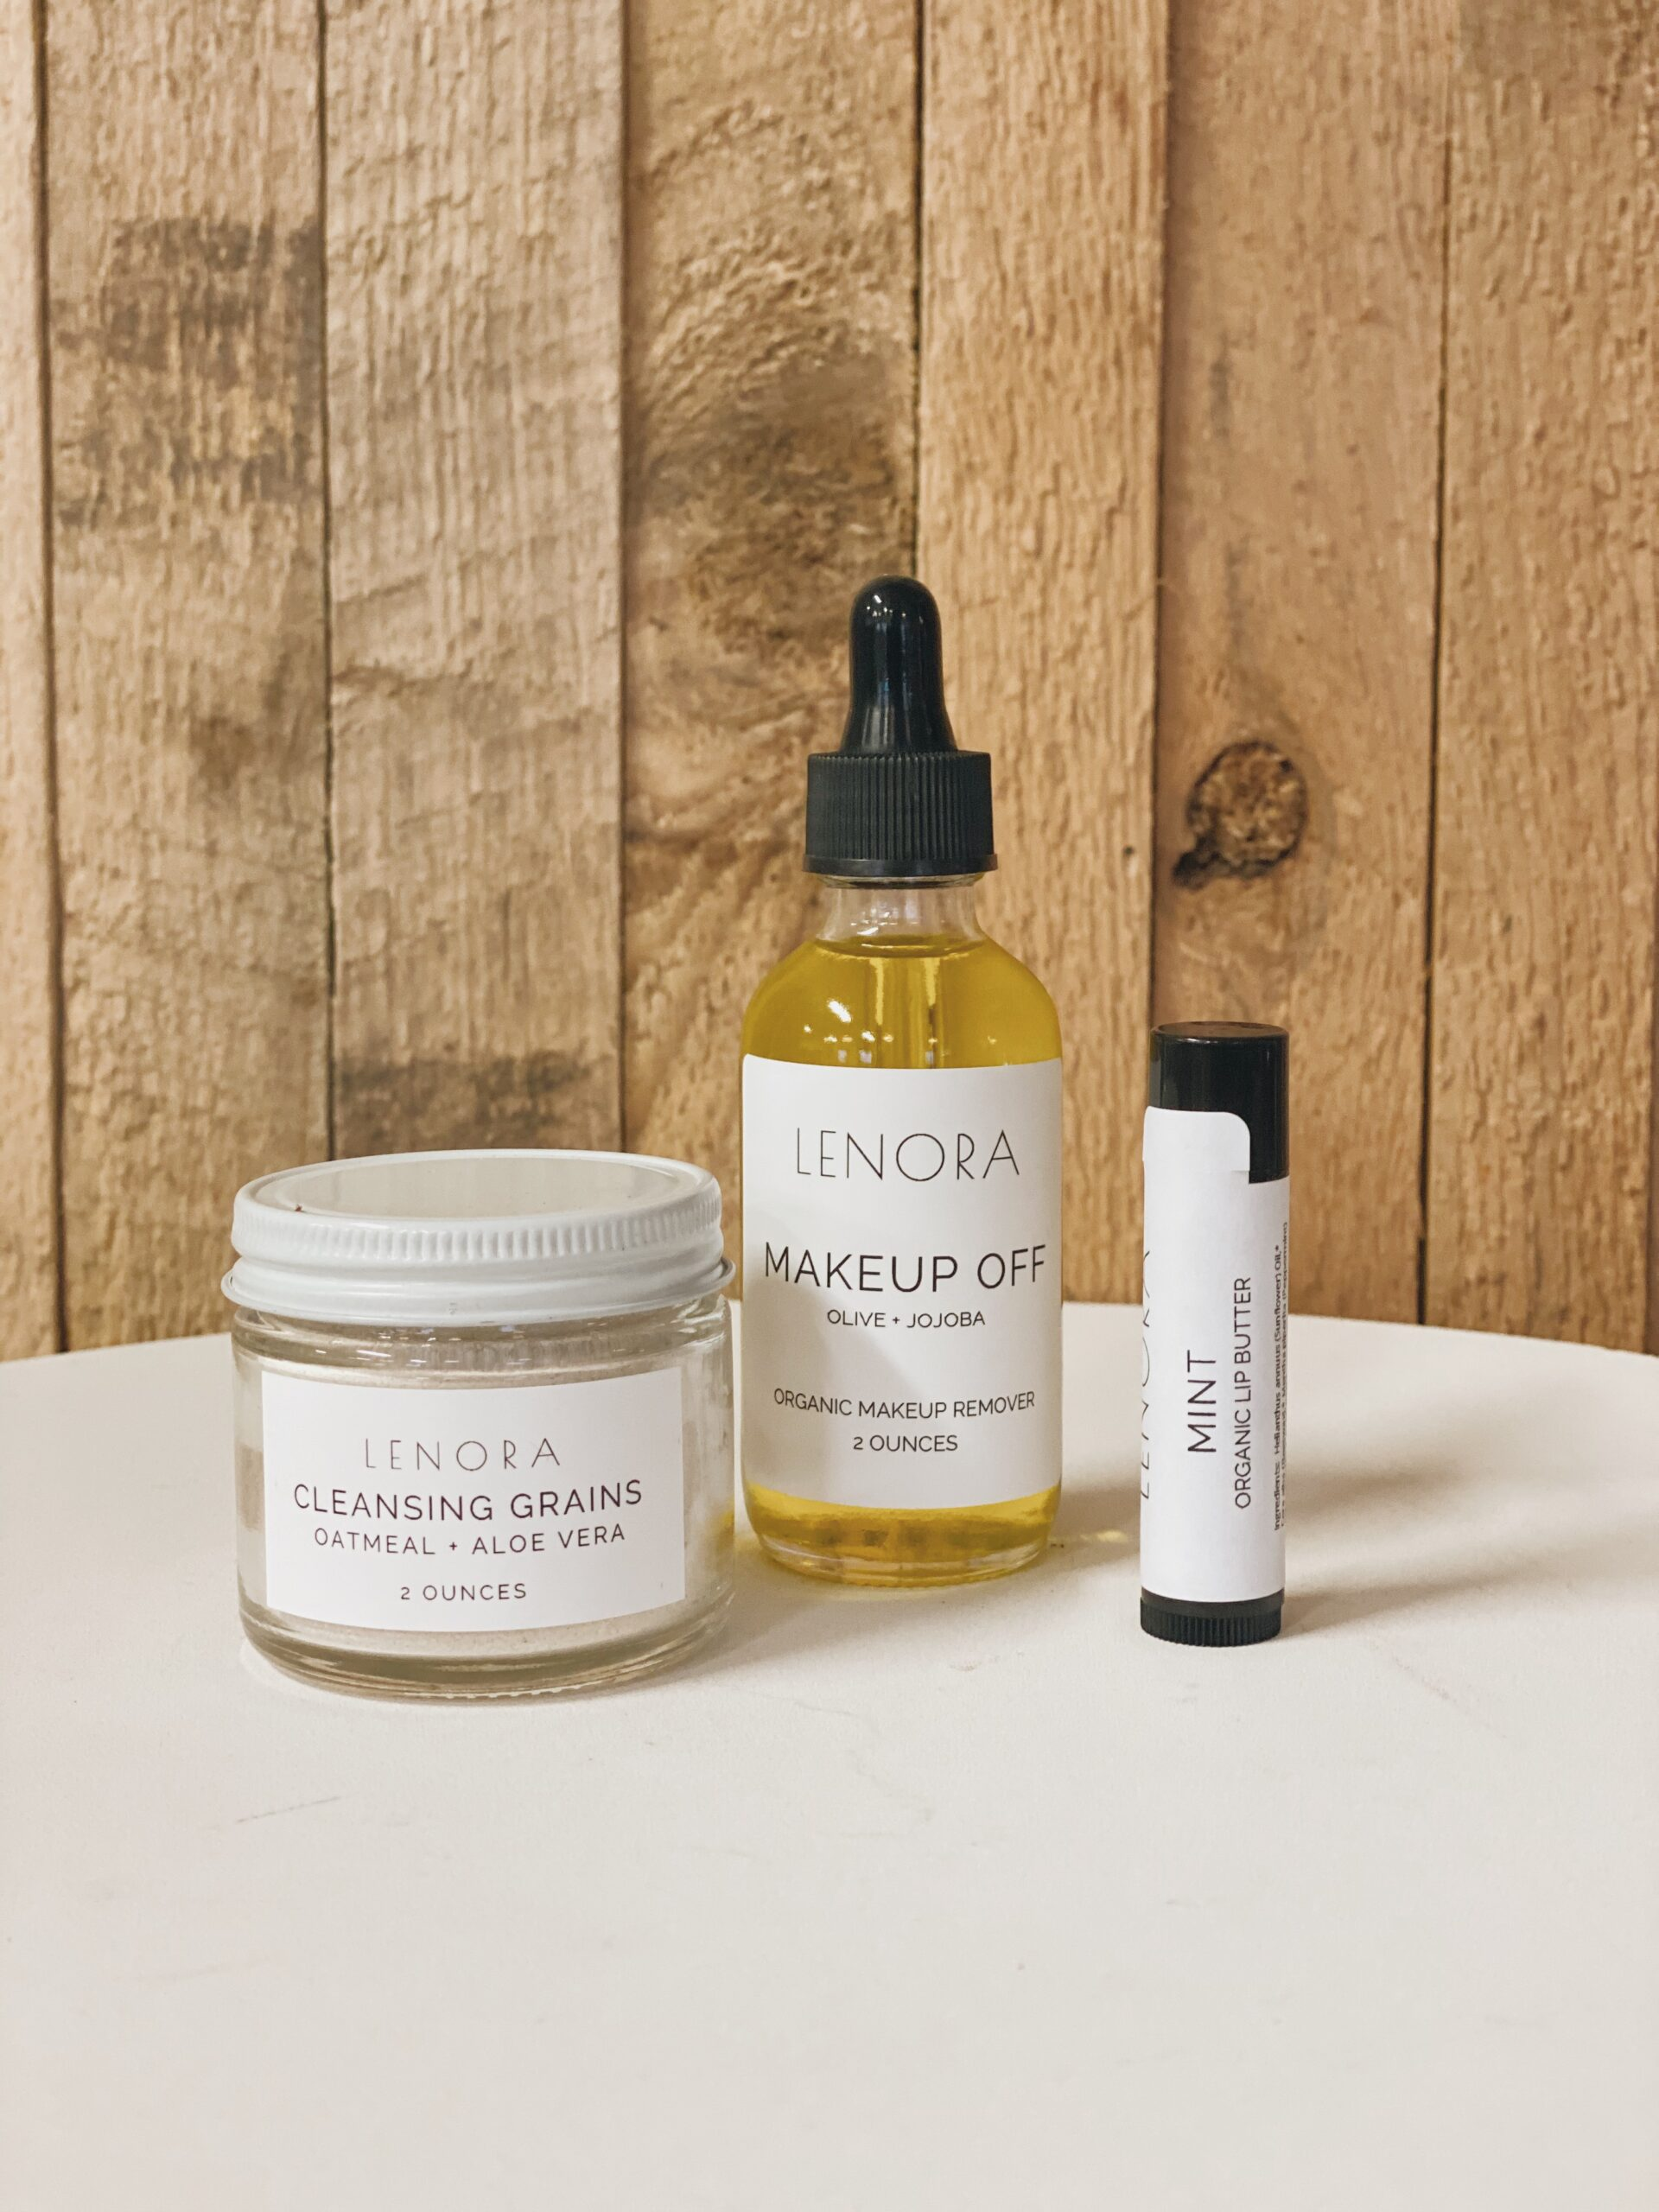 Lenora Makeup off, Cleansing Grains and organic mint lip balm